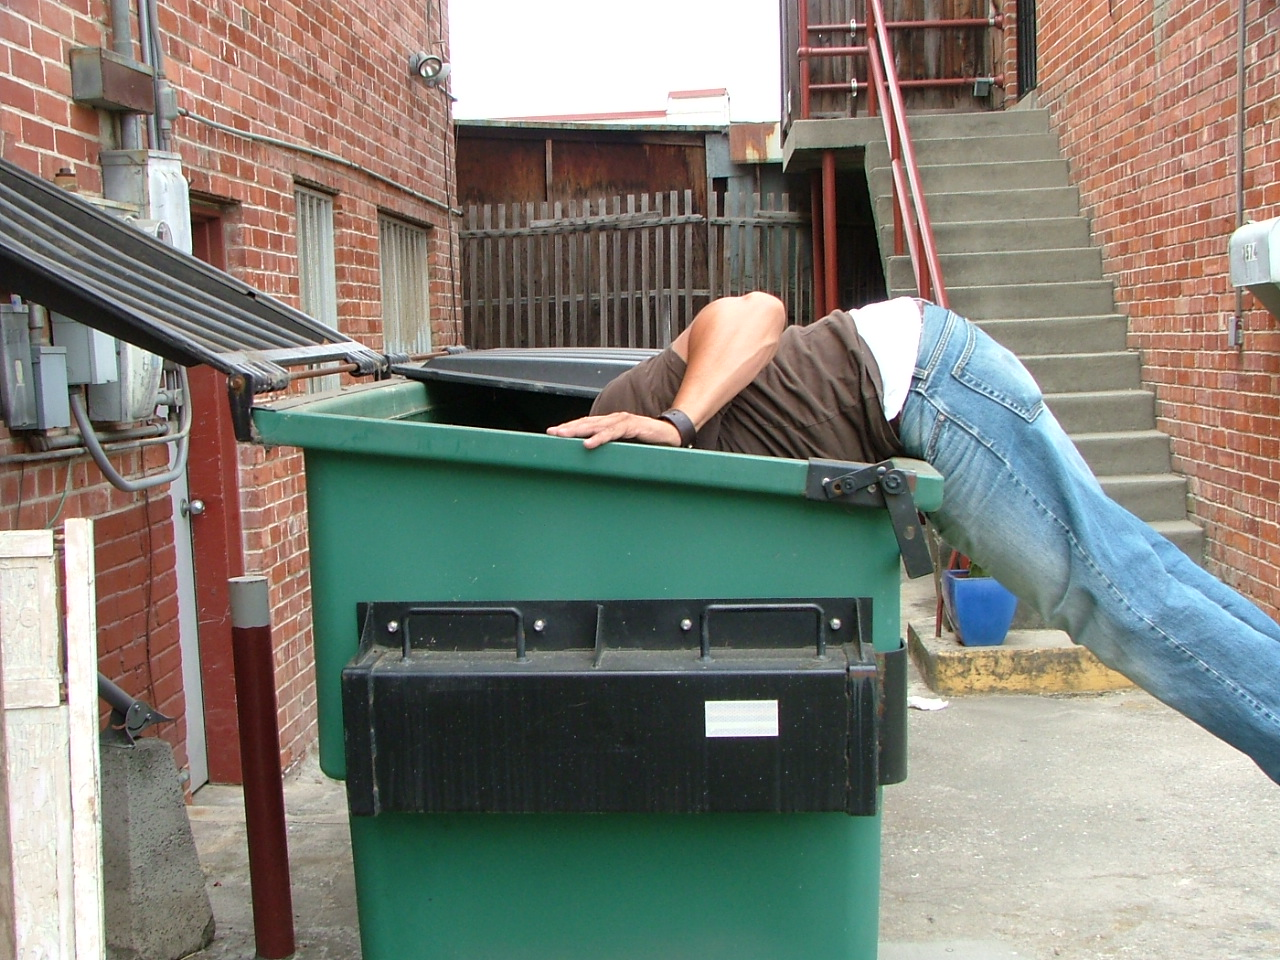 dumpster diving The art & science of dumpster diving [john hoffman] on amazoncom free shipping on qualifying offers in step-by-step, illustrated detail, john hoffman shows you how to use dumpster diving for food, clothing, appliances.